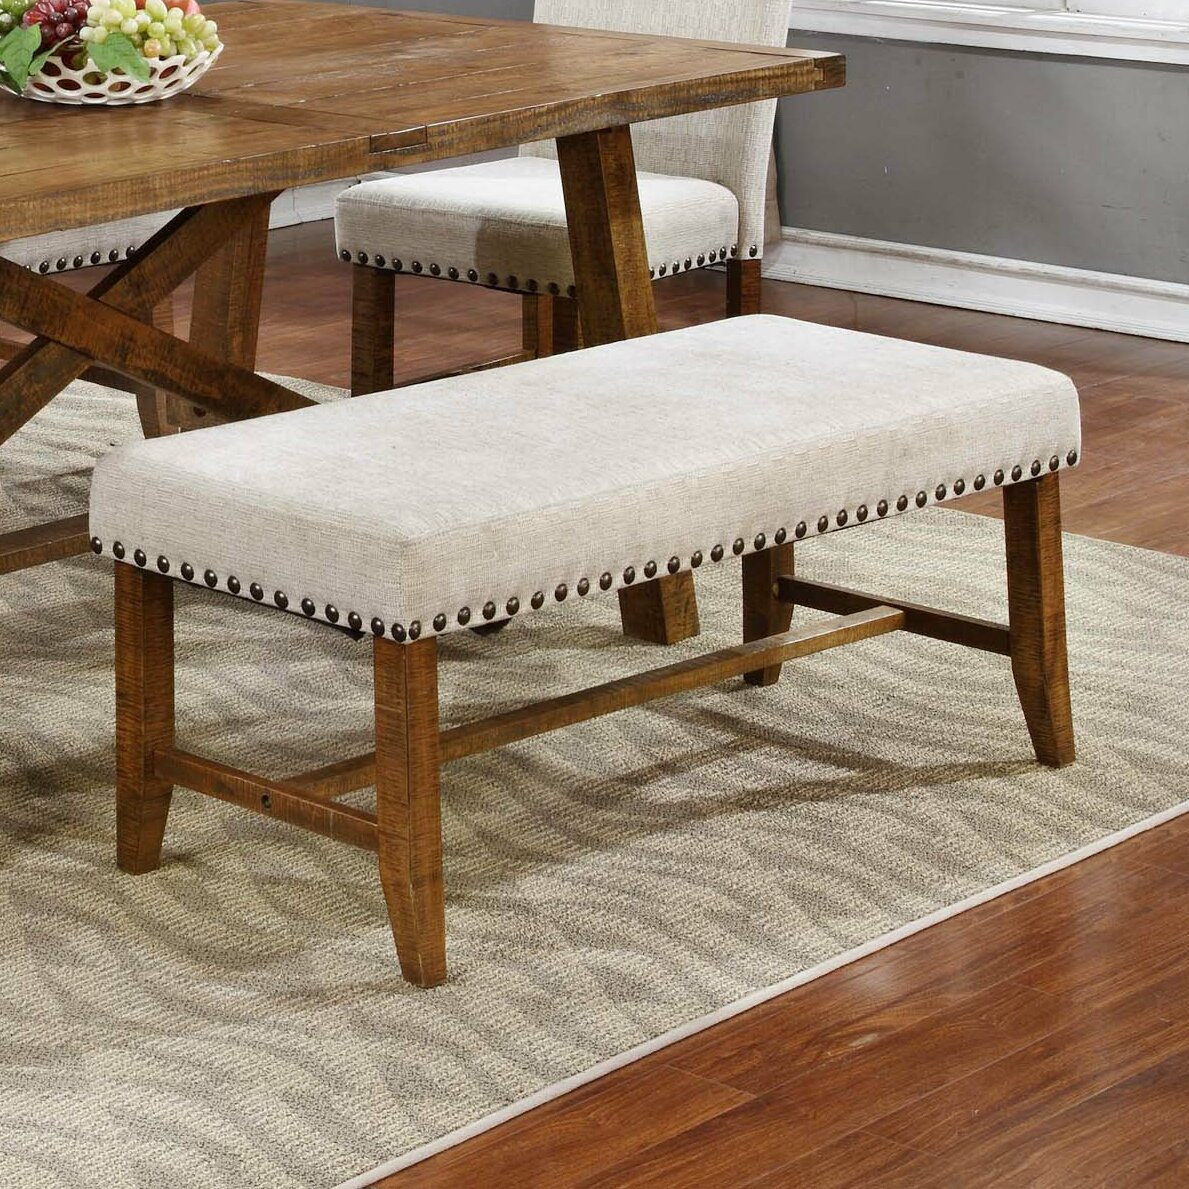 Laurel Foundry Modern Farmhouse Montagnes Upholstered Kitchen Bench Reviews Wayfair